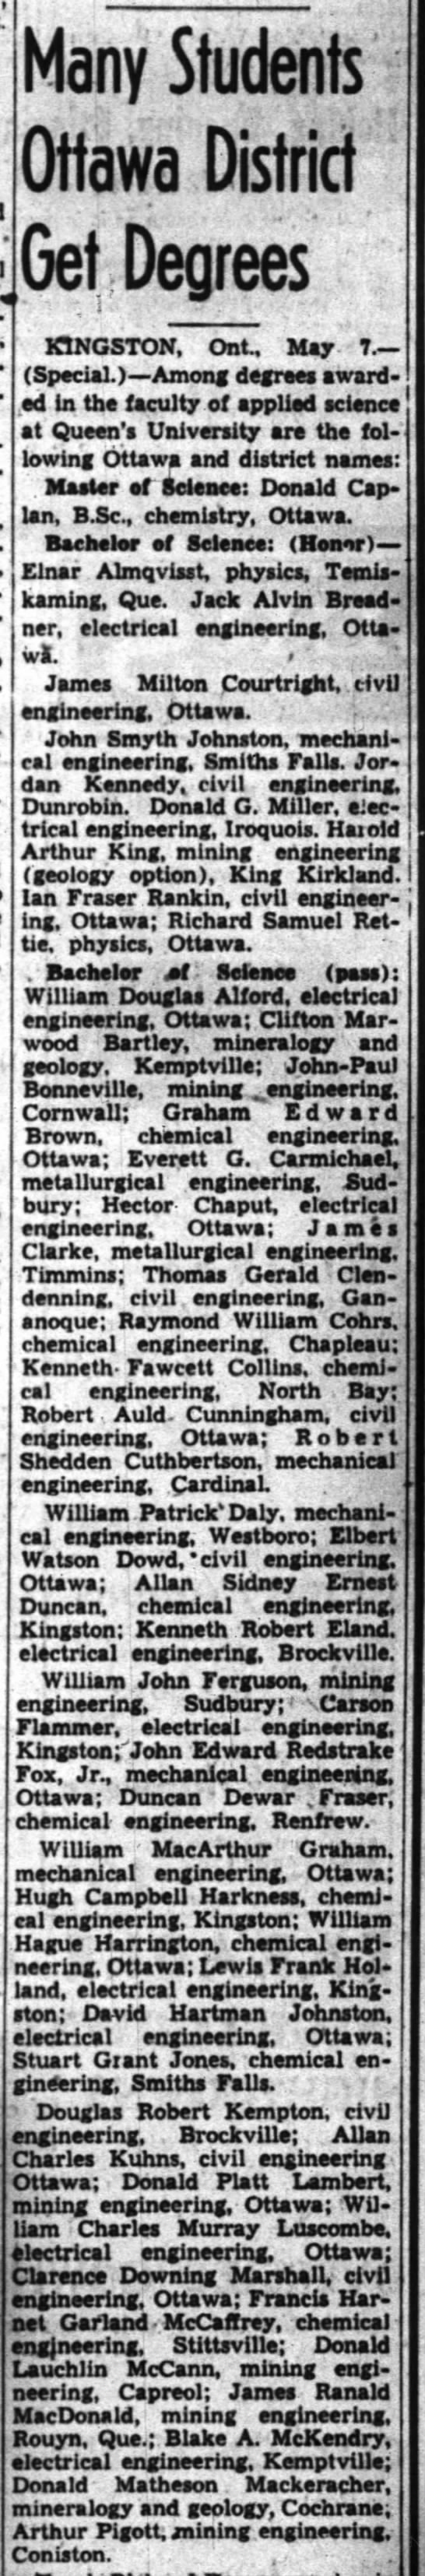 Blake McKendry, Queen's graduate, 8 May 1941 - Many Students Ottawa District Get Degrees...